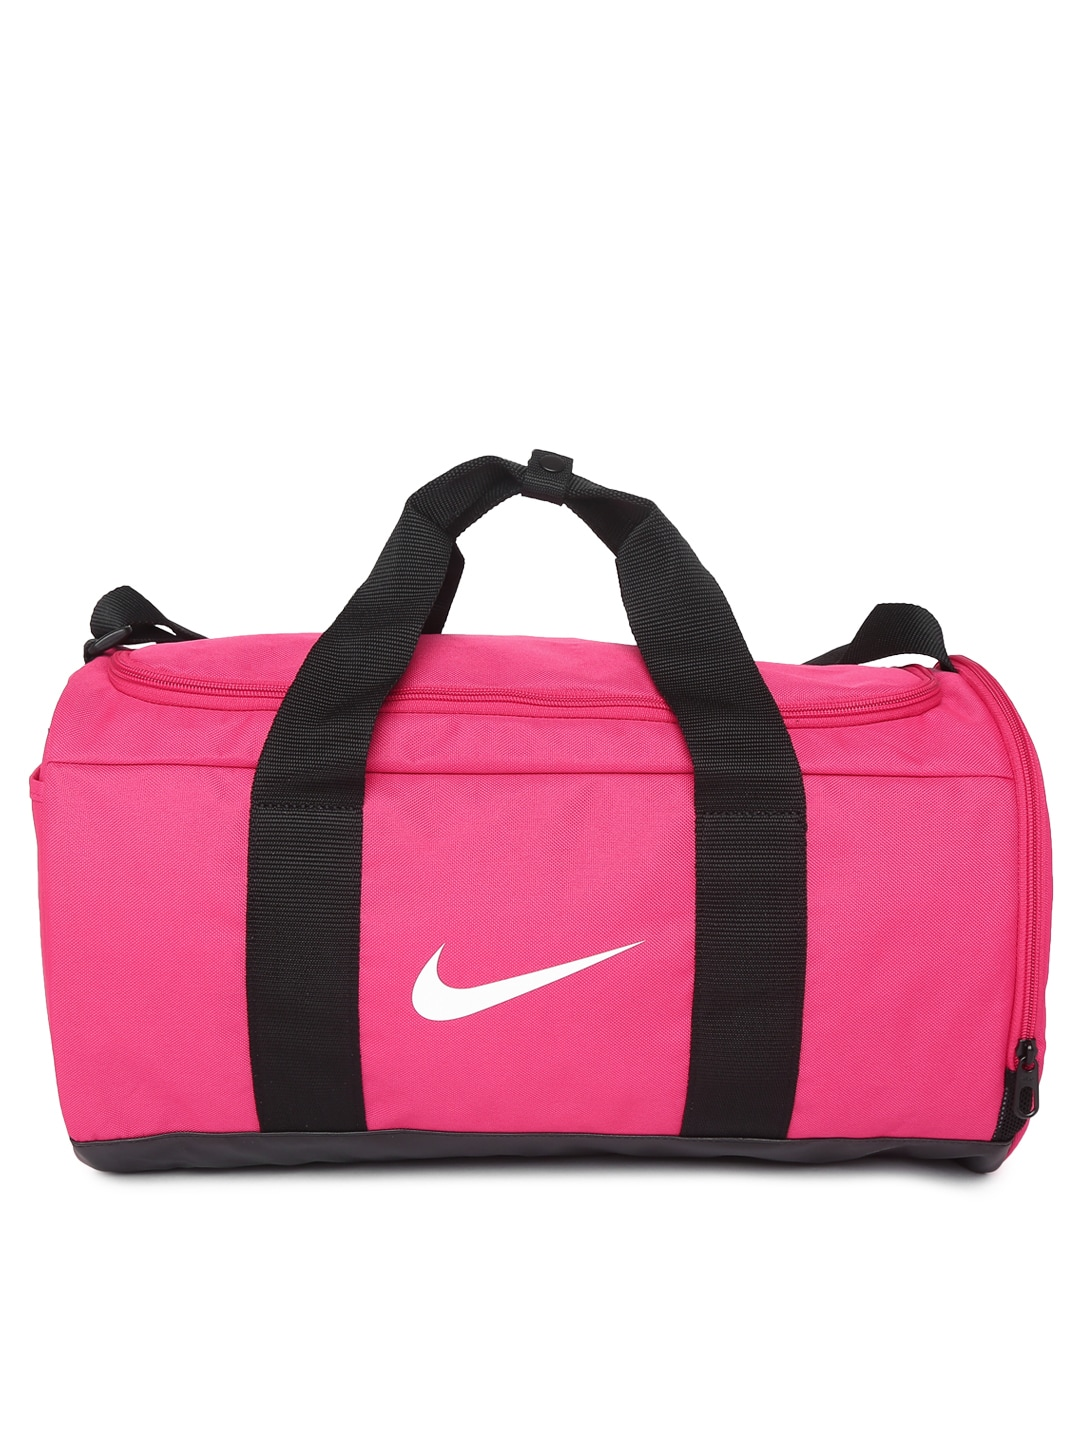 b1be103ef0 Nike Duffle Bags - Buy Nike Duffle Bags online in India